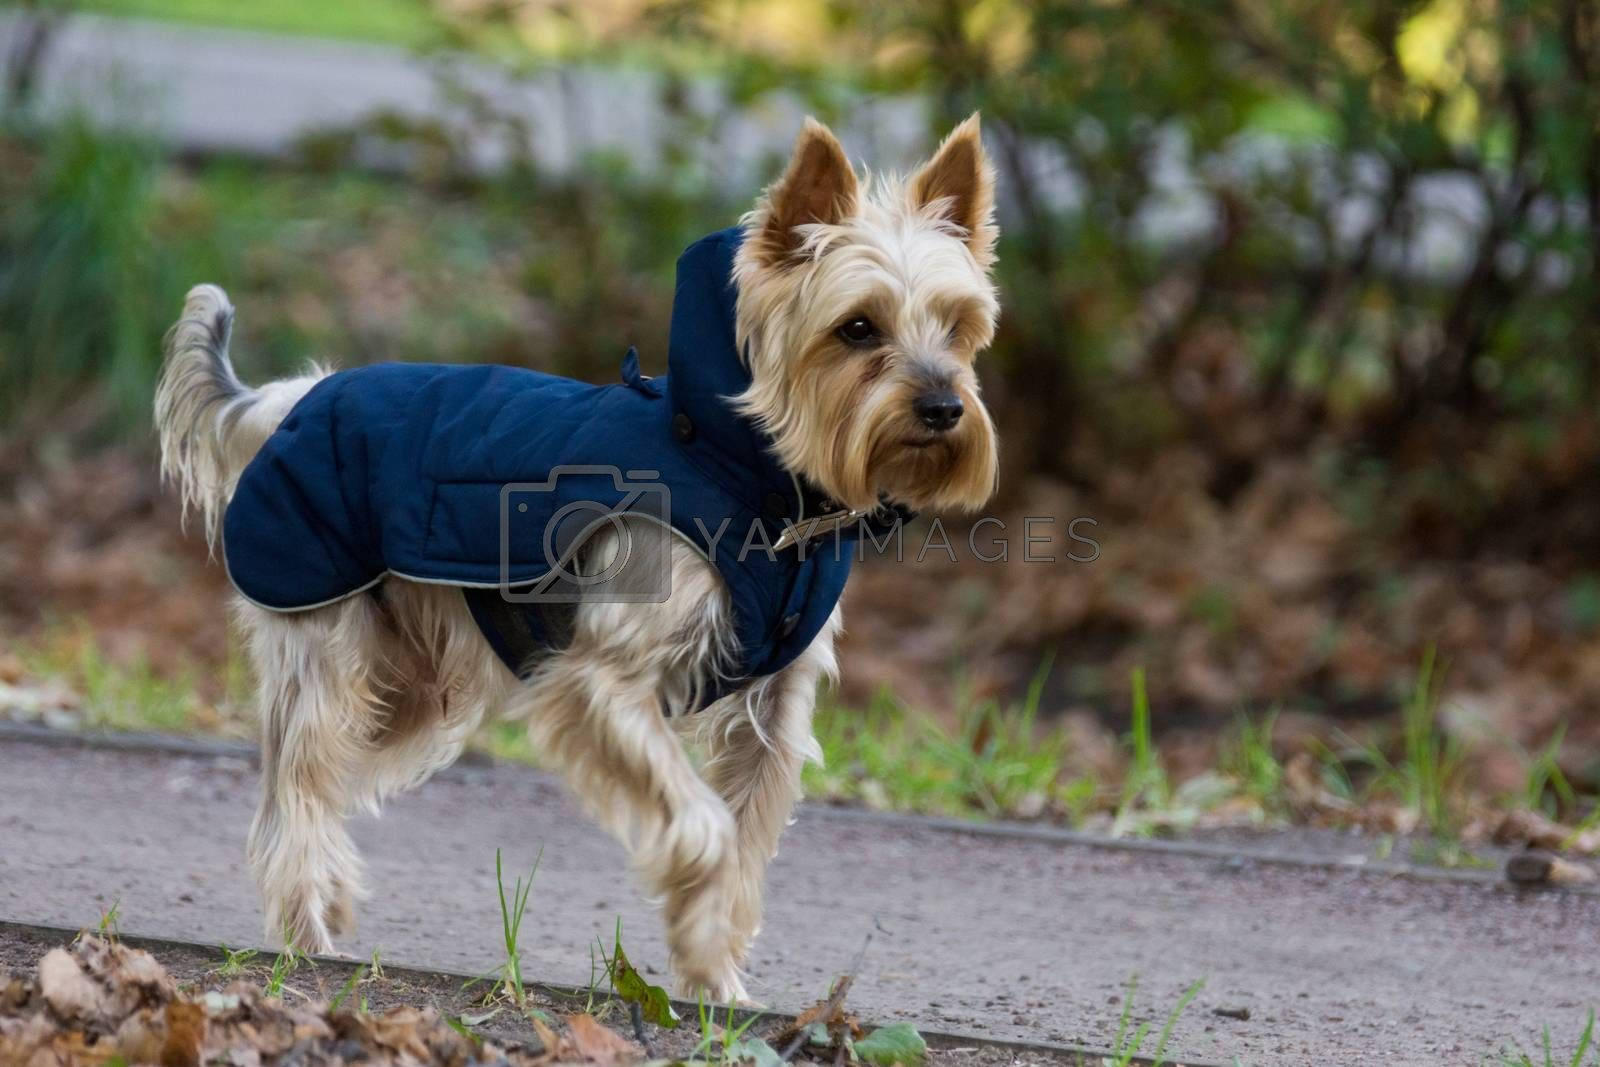 The photo shows a dog running in overalls